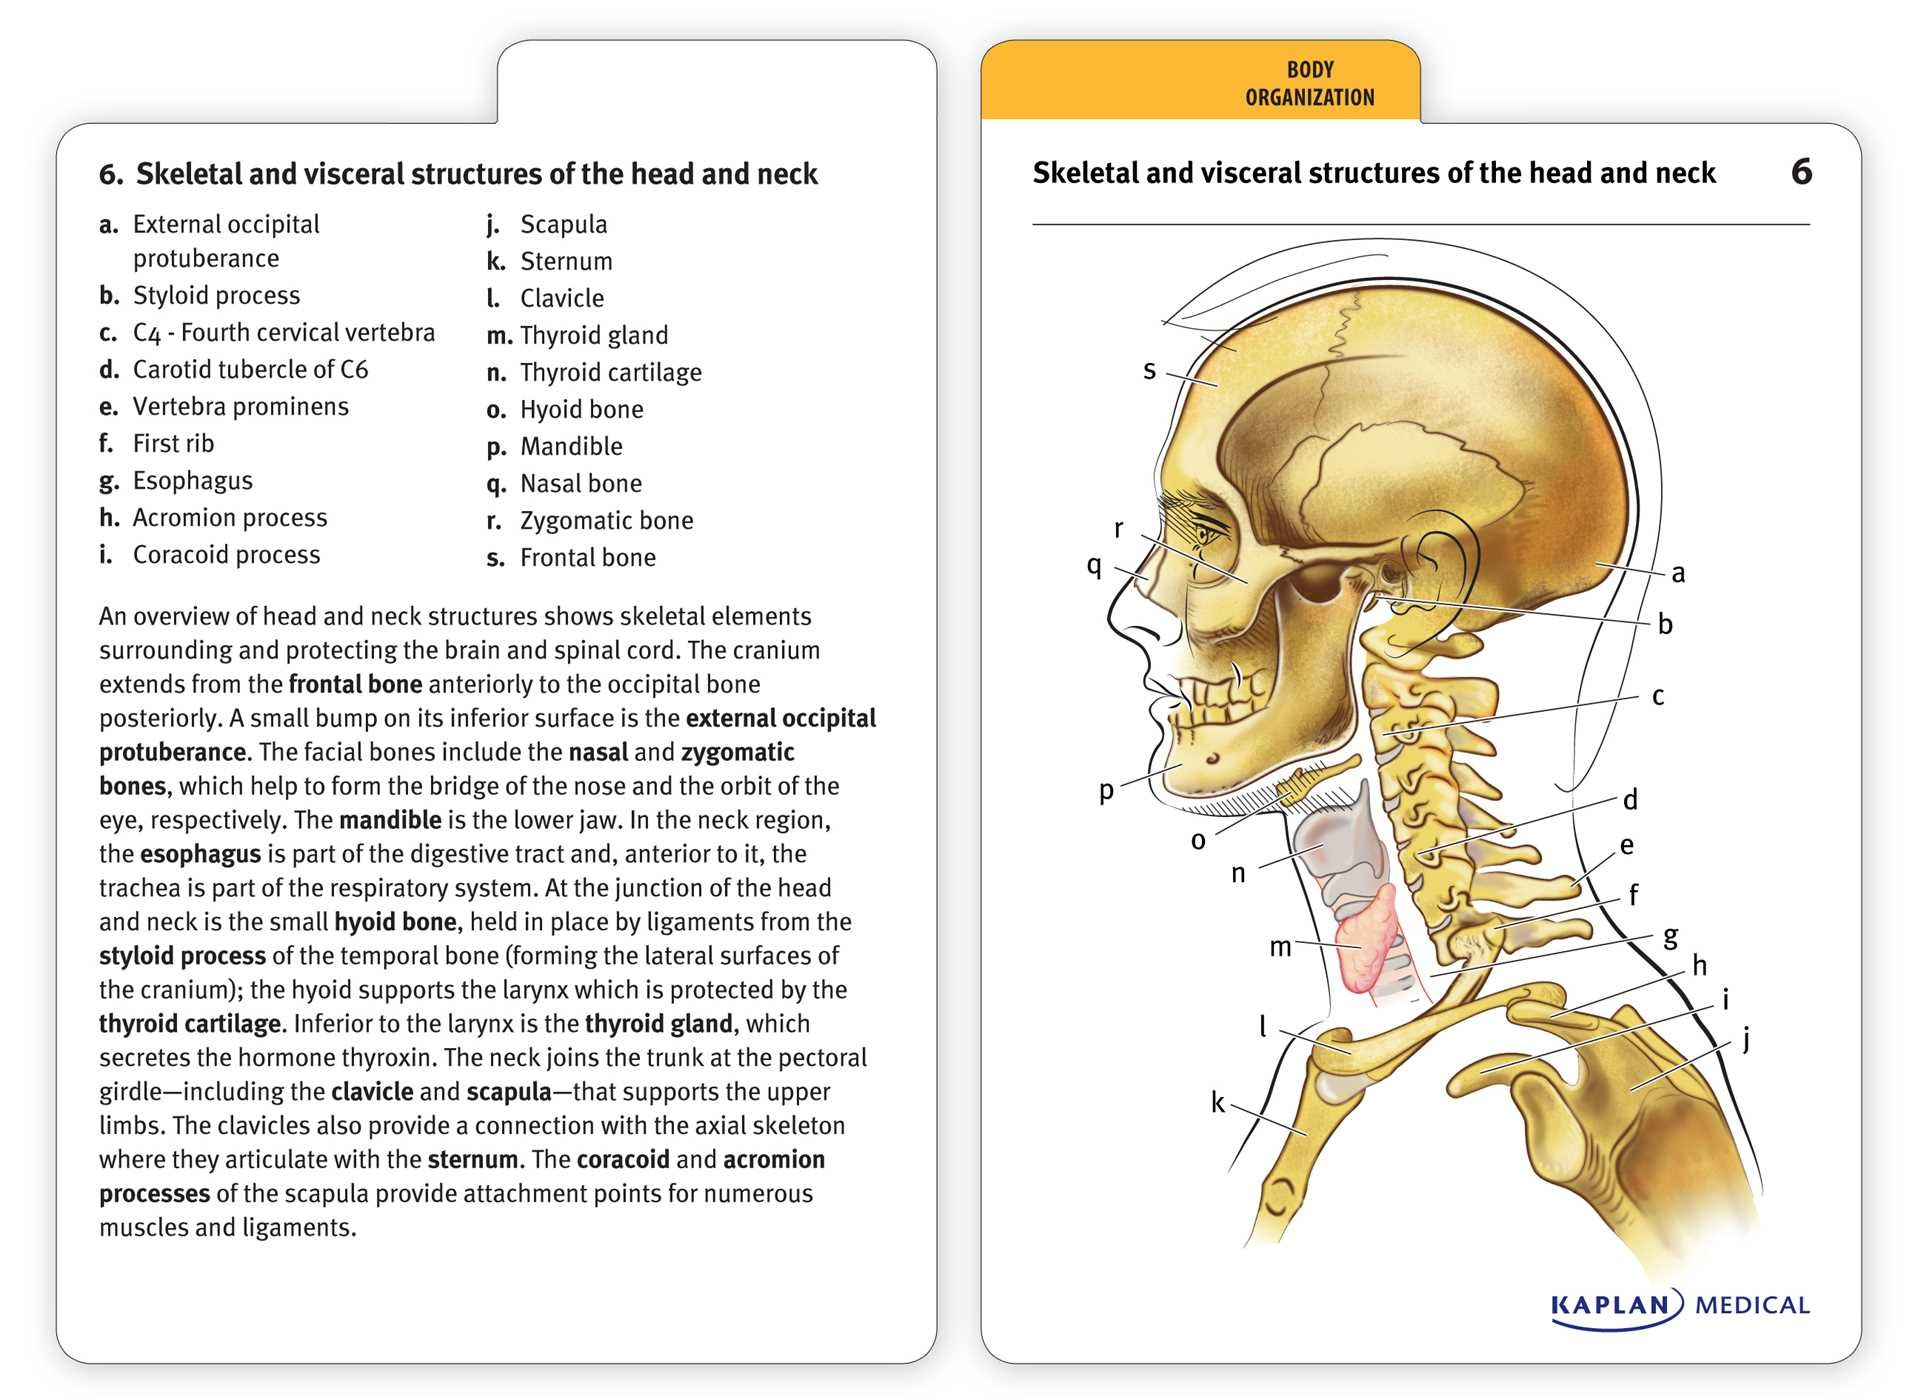 Muscle Anatomy Flash Cards And Anatomy Flash Cards Printable - Free Printable Muscle Flashcards